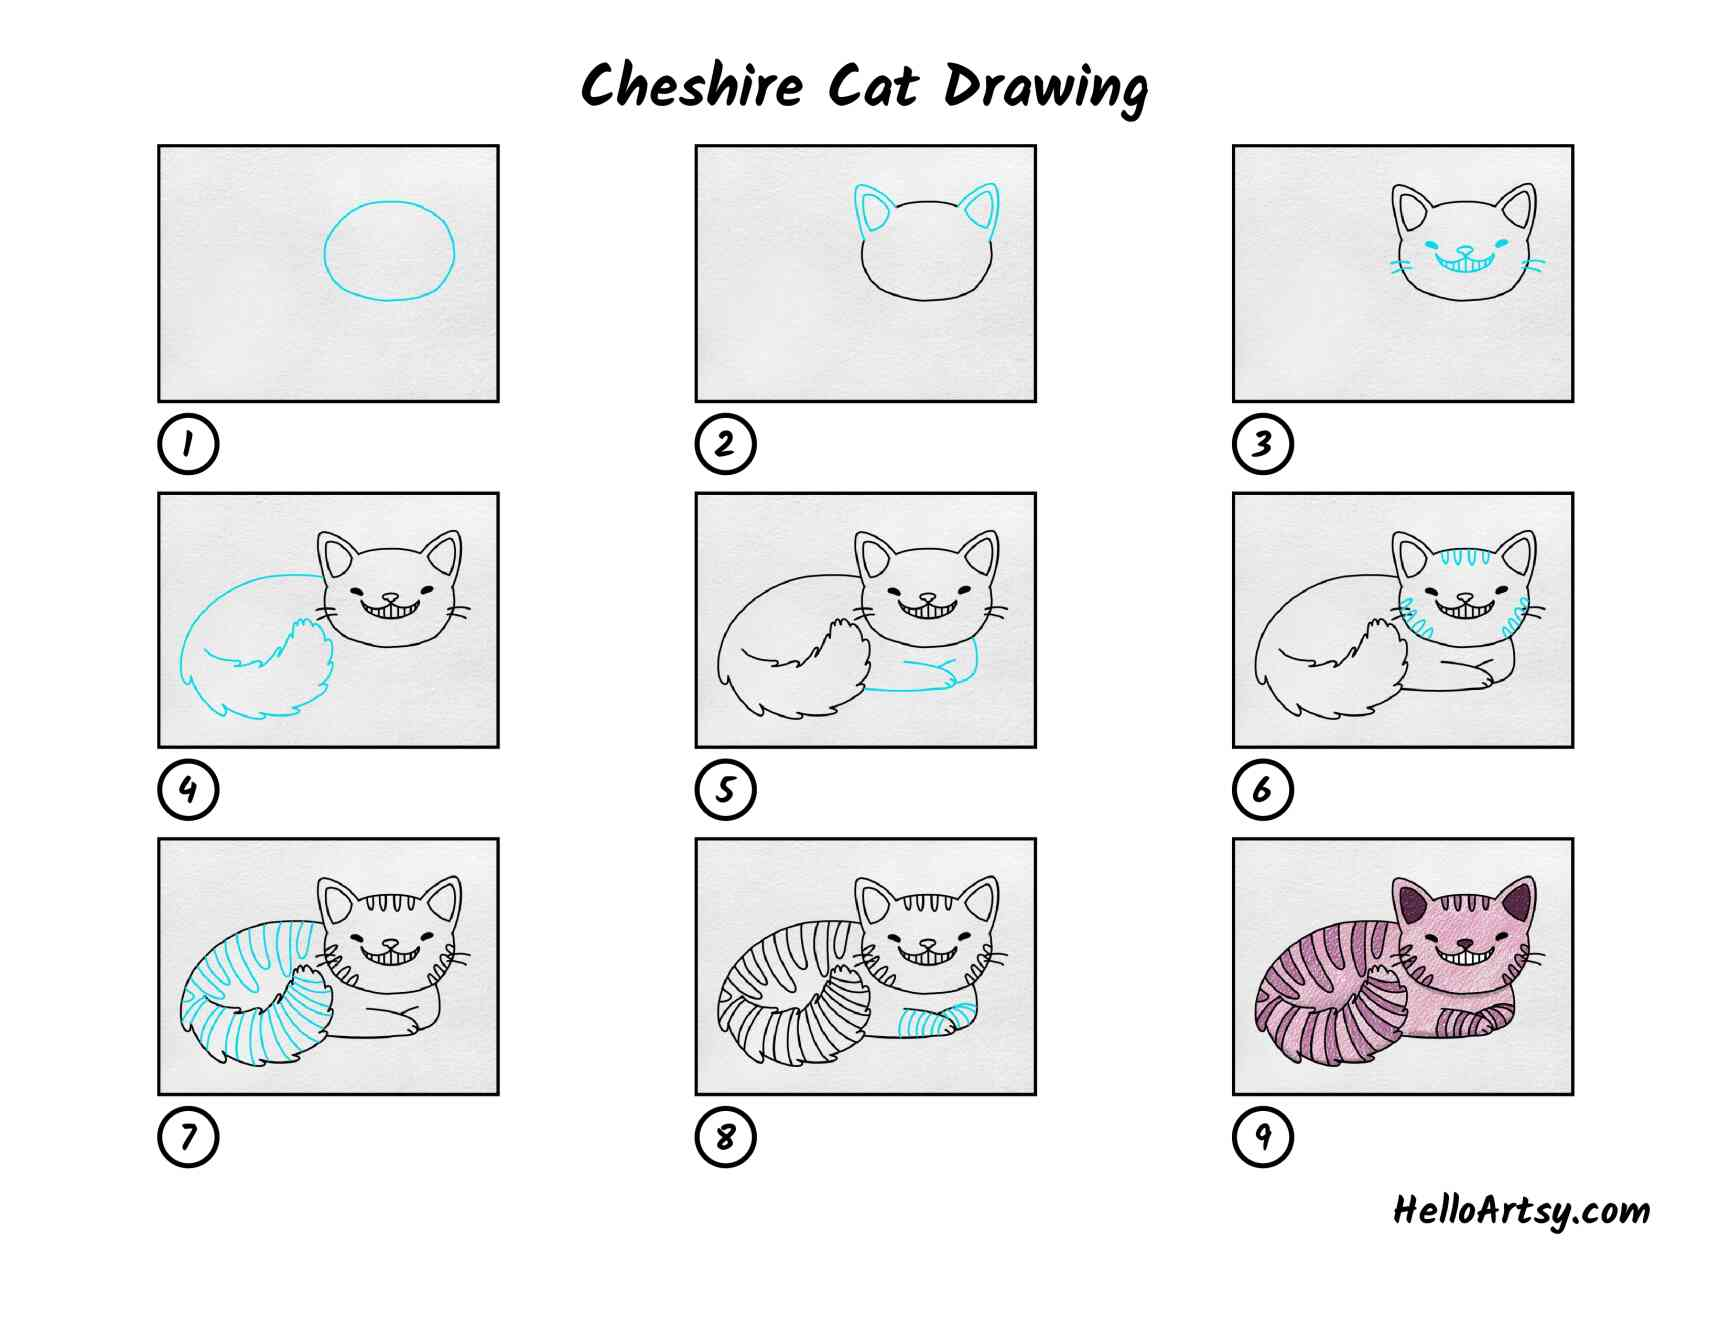 Cheshire Cat Drawing: All Steps